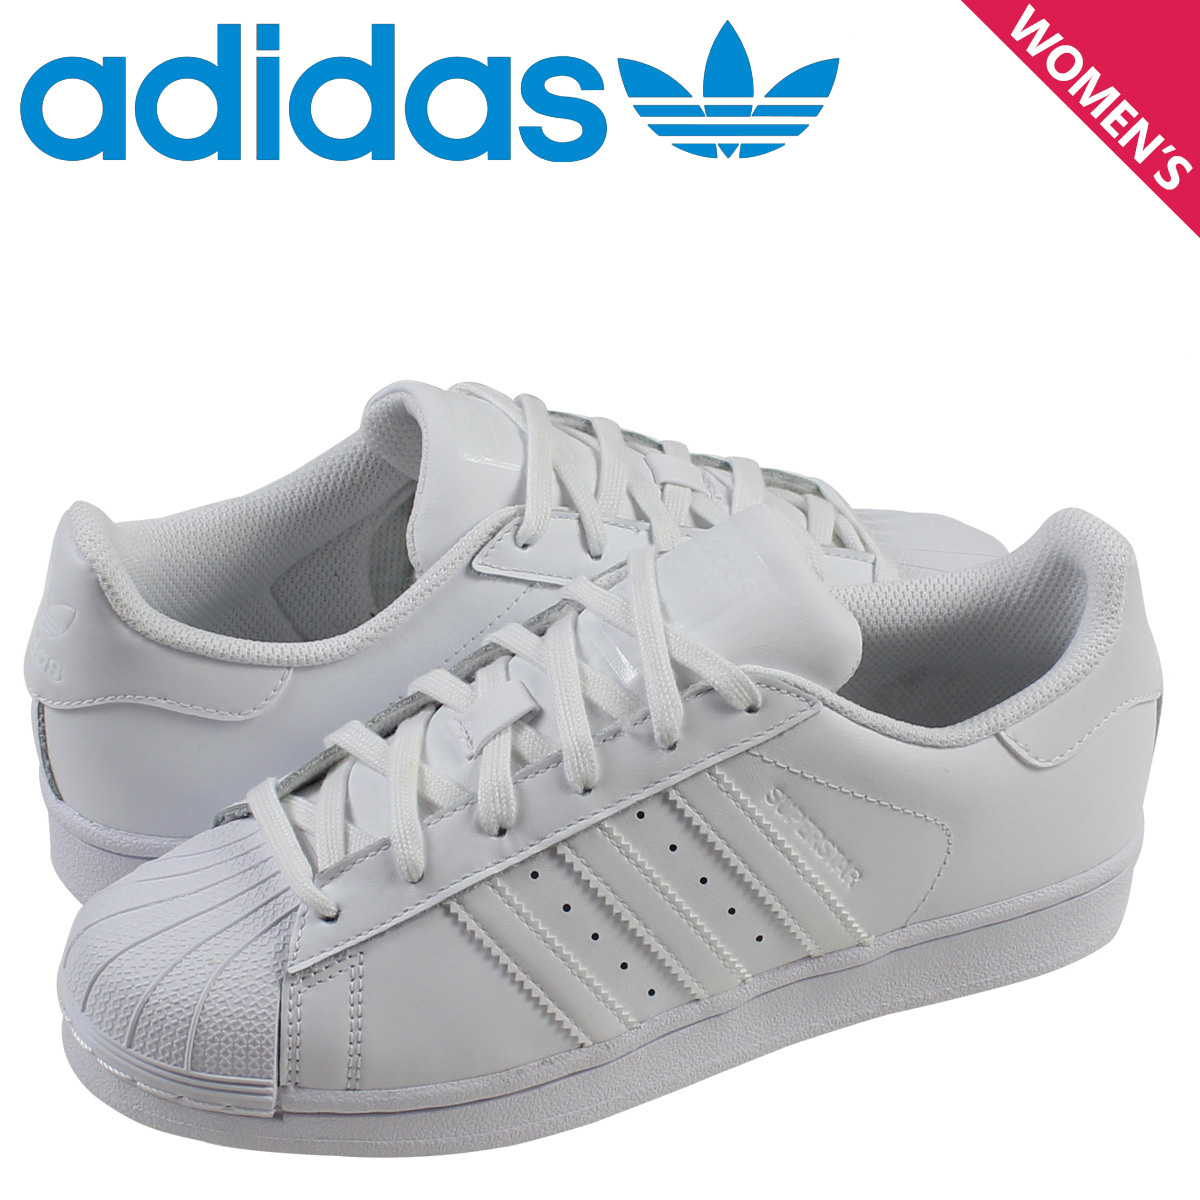 new arrival 31c1a 5ce25  laquo Pre-order items raquo   laquo 7 31 days stock raquo  adidas ...